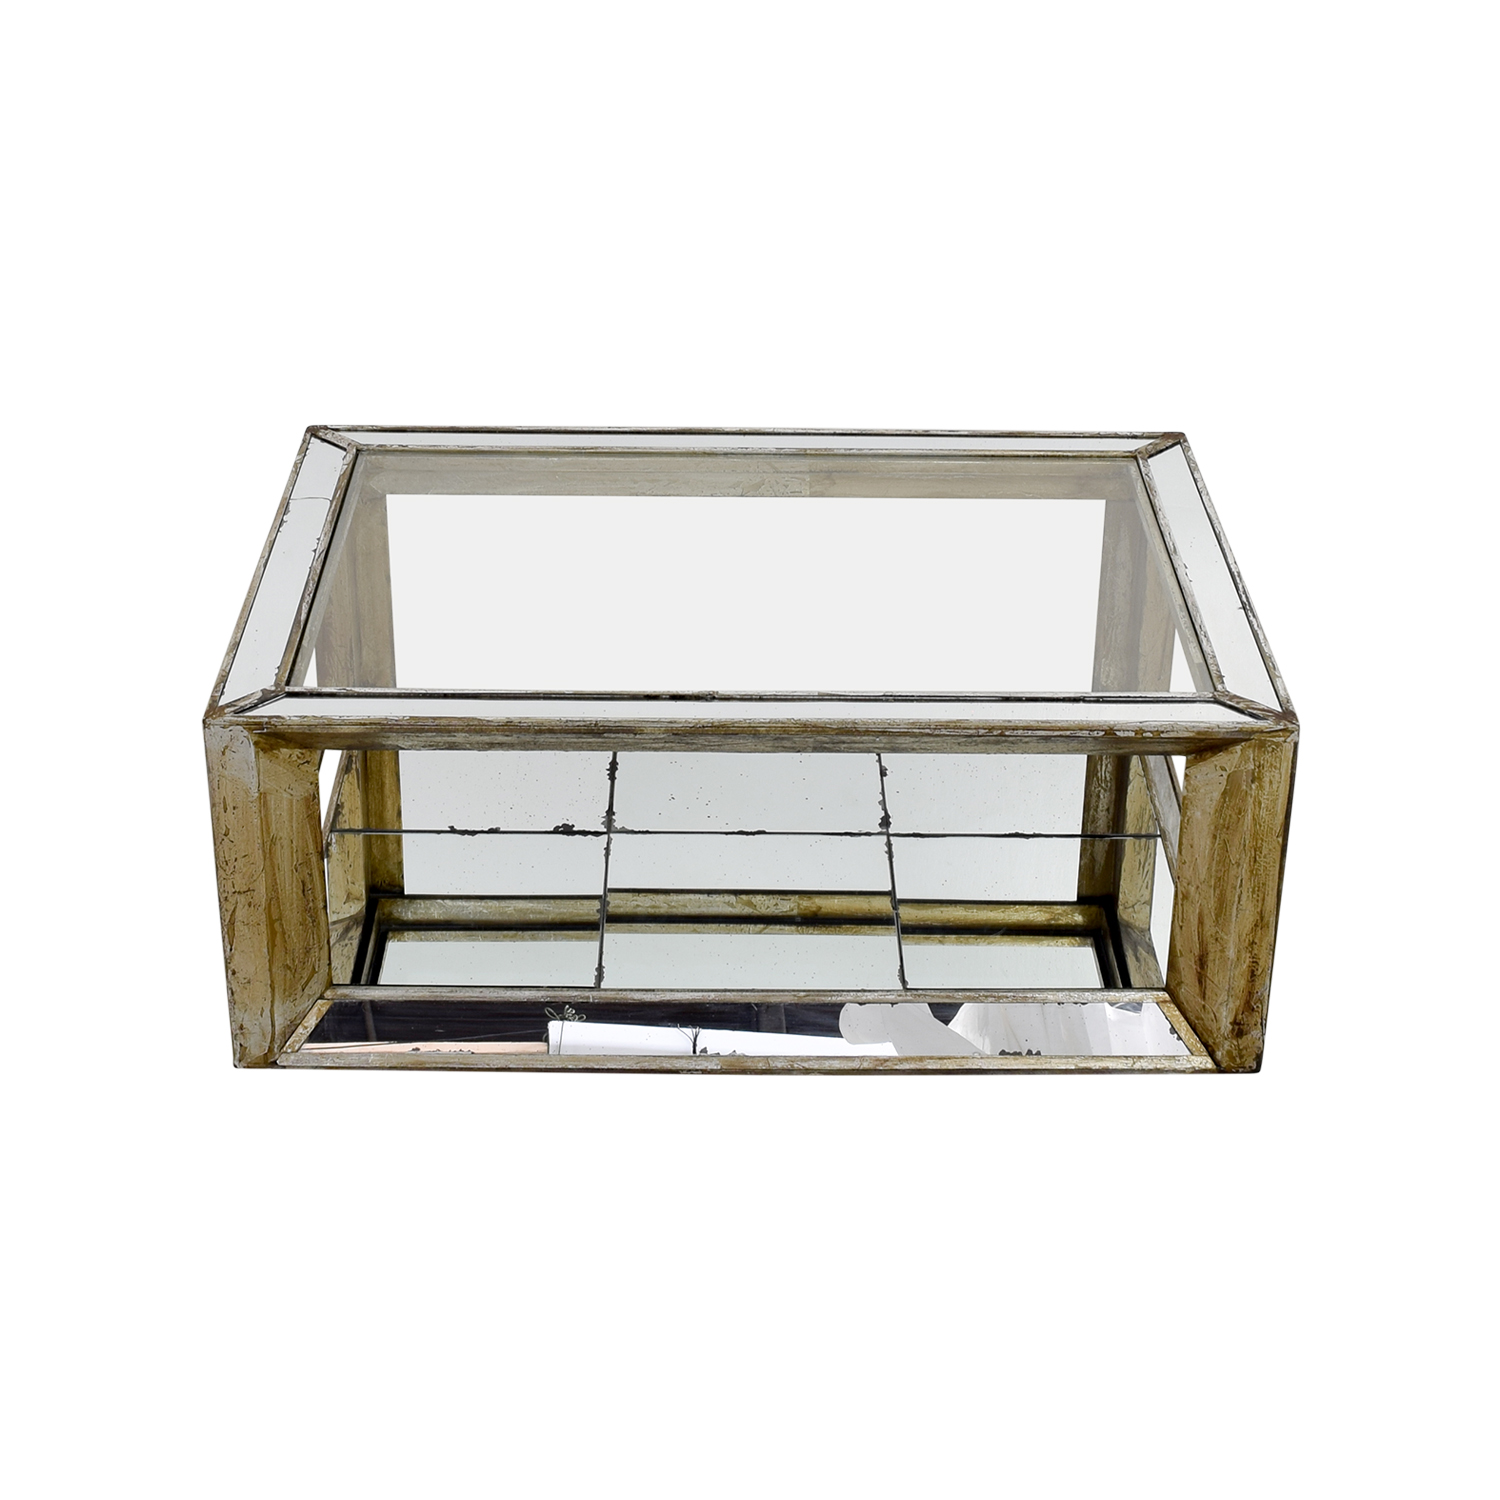 Houston Furniture Houston Furniture Mirror and Glass Coffee Table